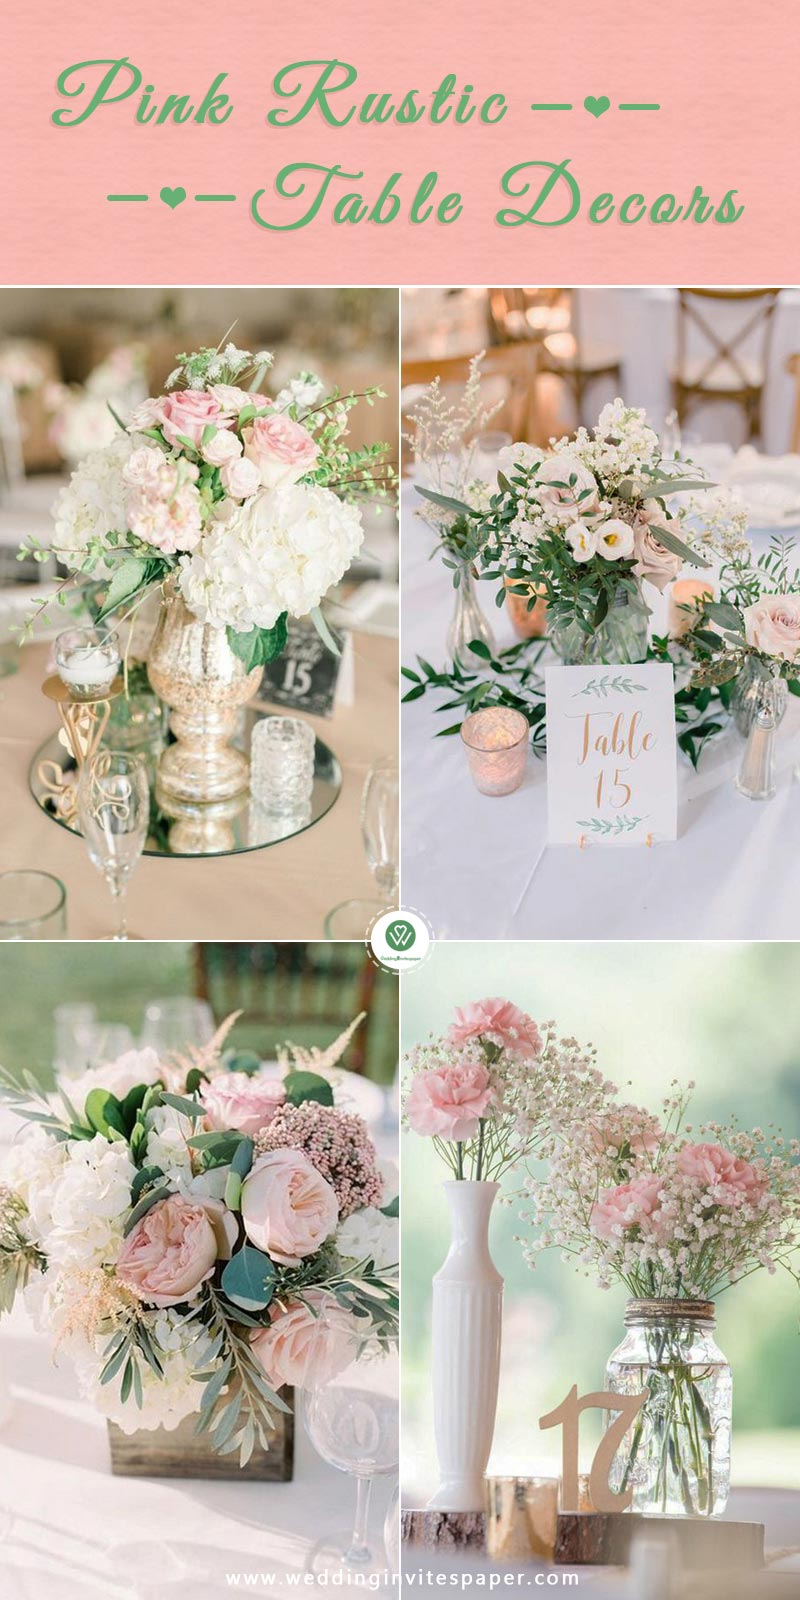 Pink-Rustic-Table-Decors.jpg